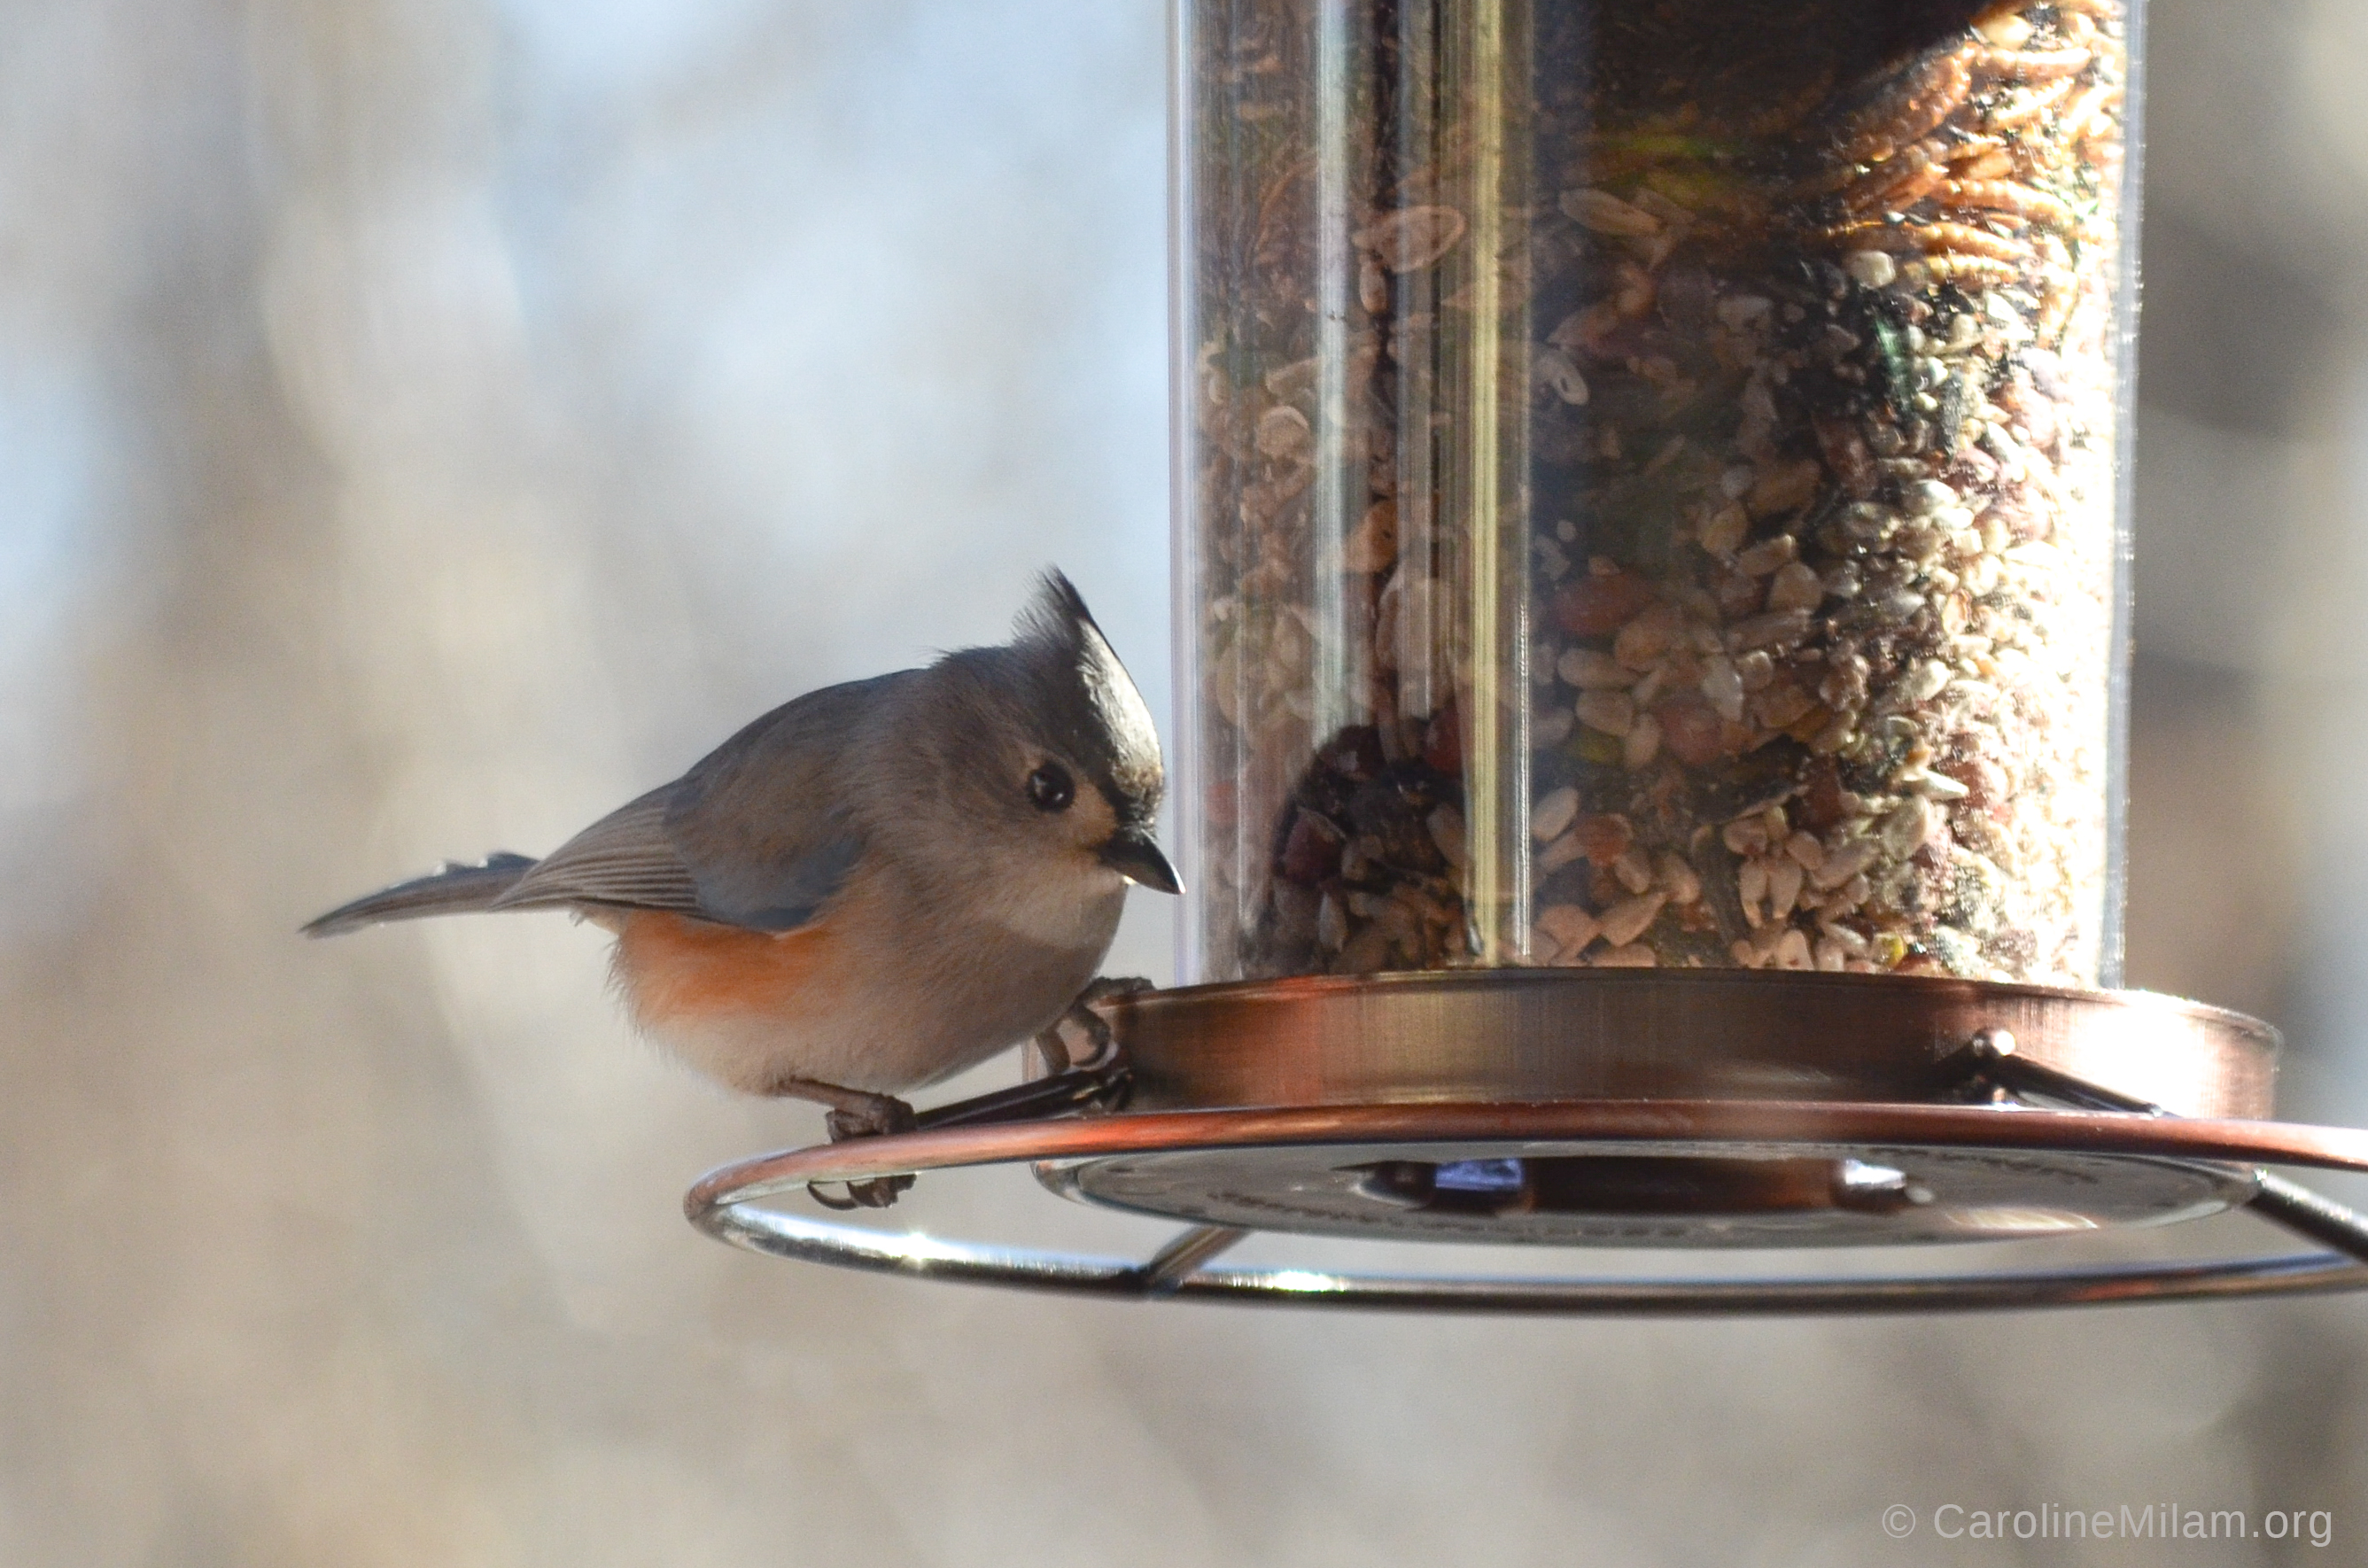 At the feeder